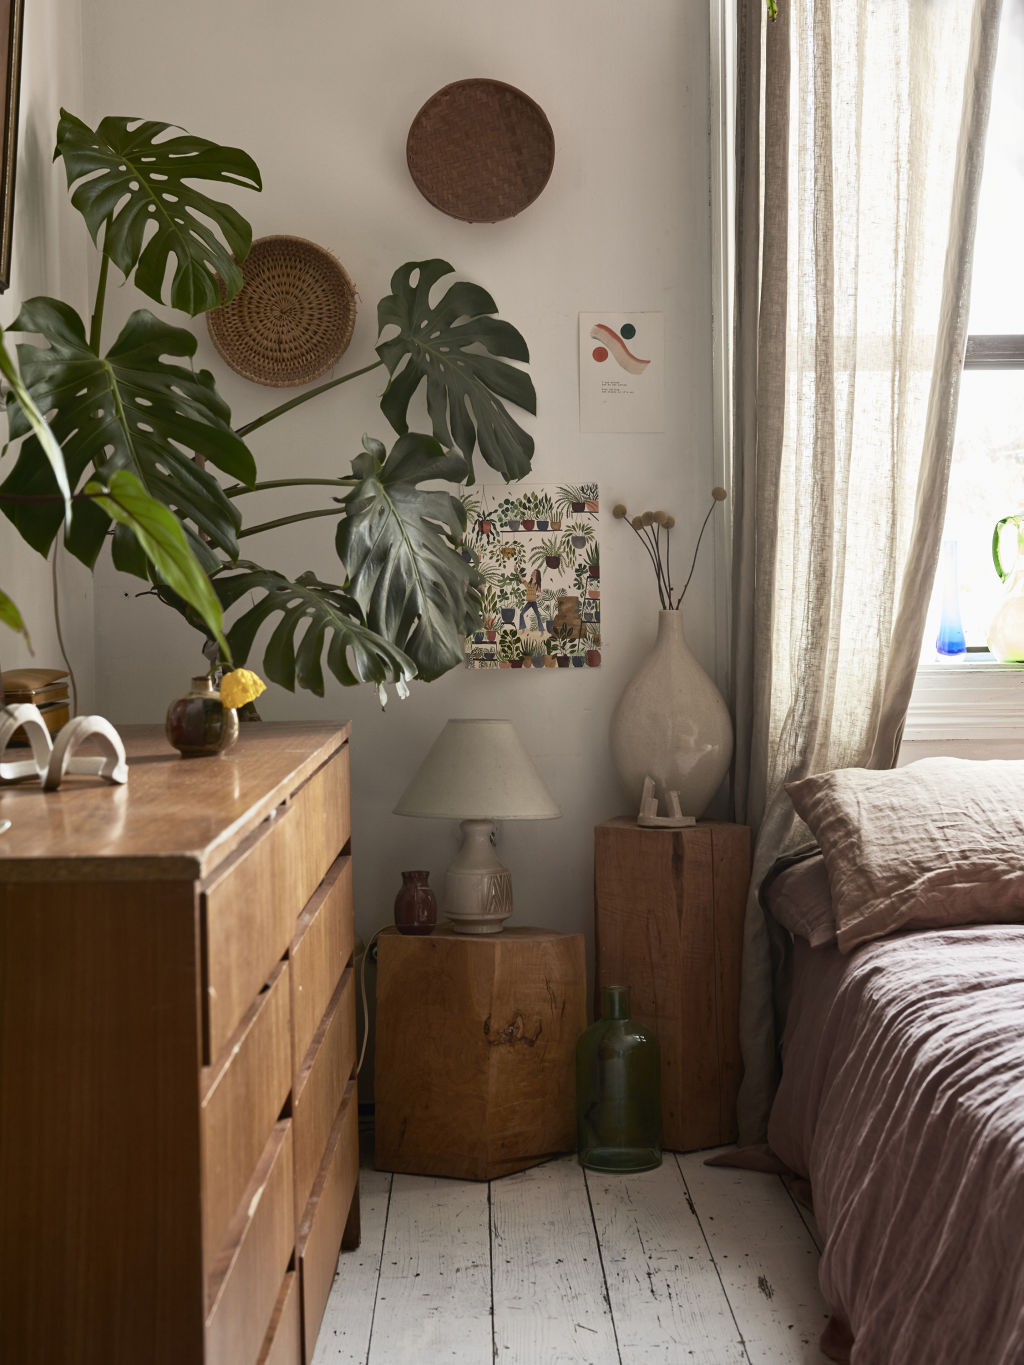 Jenna's home is filled with treasured pieces gifted and made by friends. Ceramic sculptures by HanMade. Prints by Edie Willmett. 'Plant Mama' water colour print by a Slovakian painter, Kristina Kemenikova. Secondhand lamp + vase. Bed Threads bed linen. Styling: Annie Portelli.